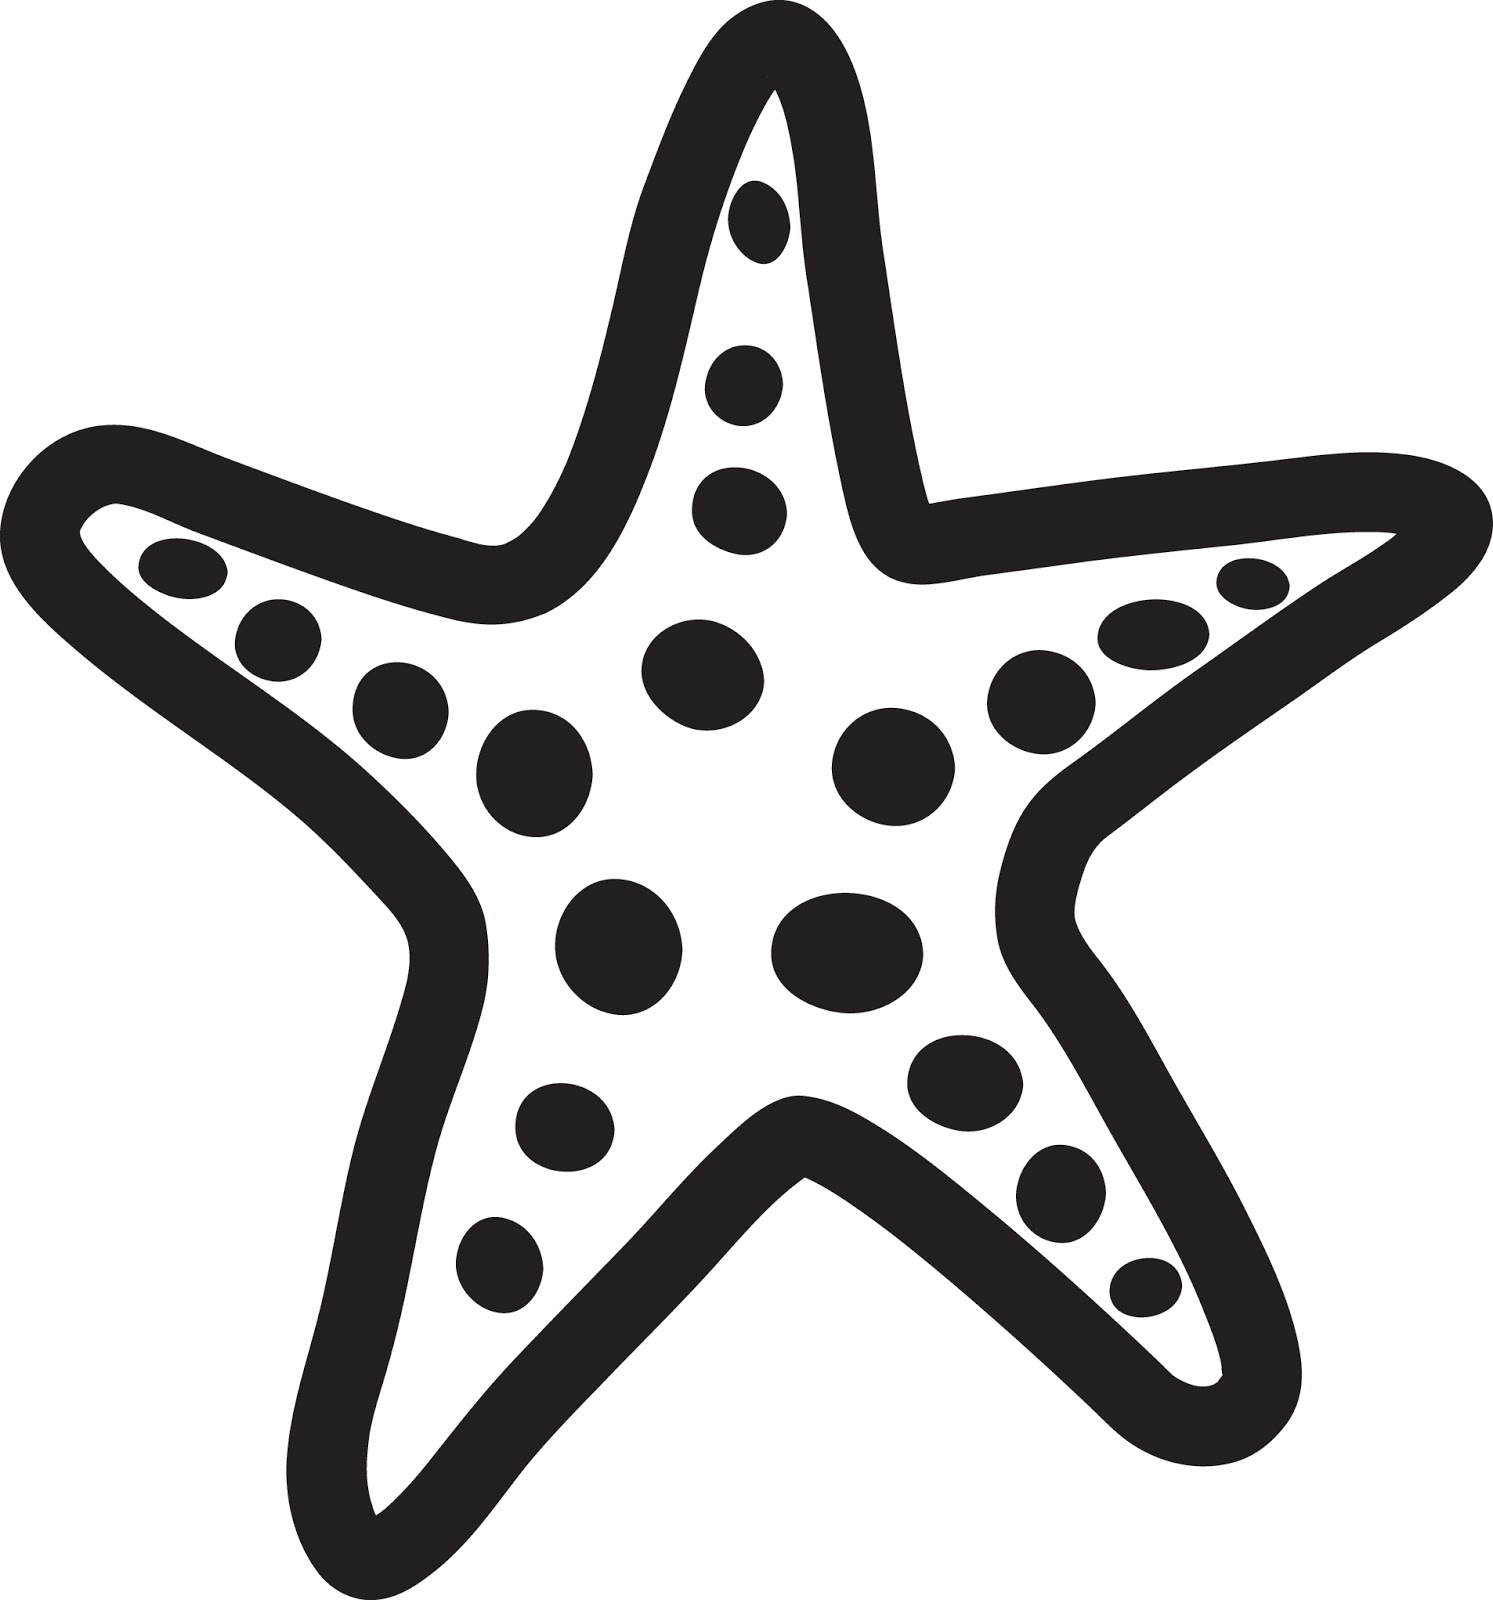 Starfish clipart black and white » Clipart Station.